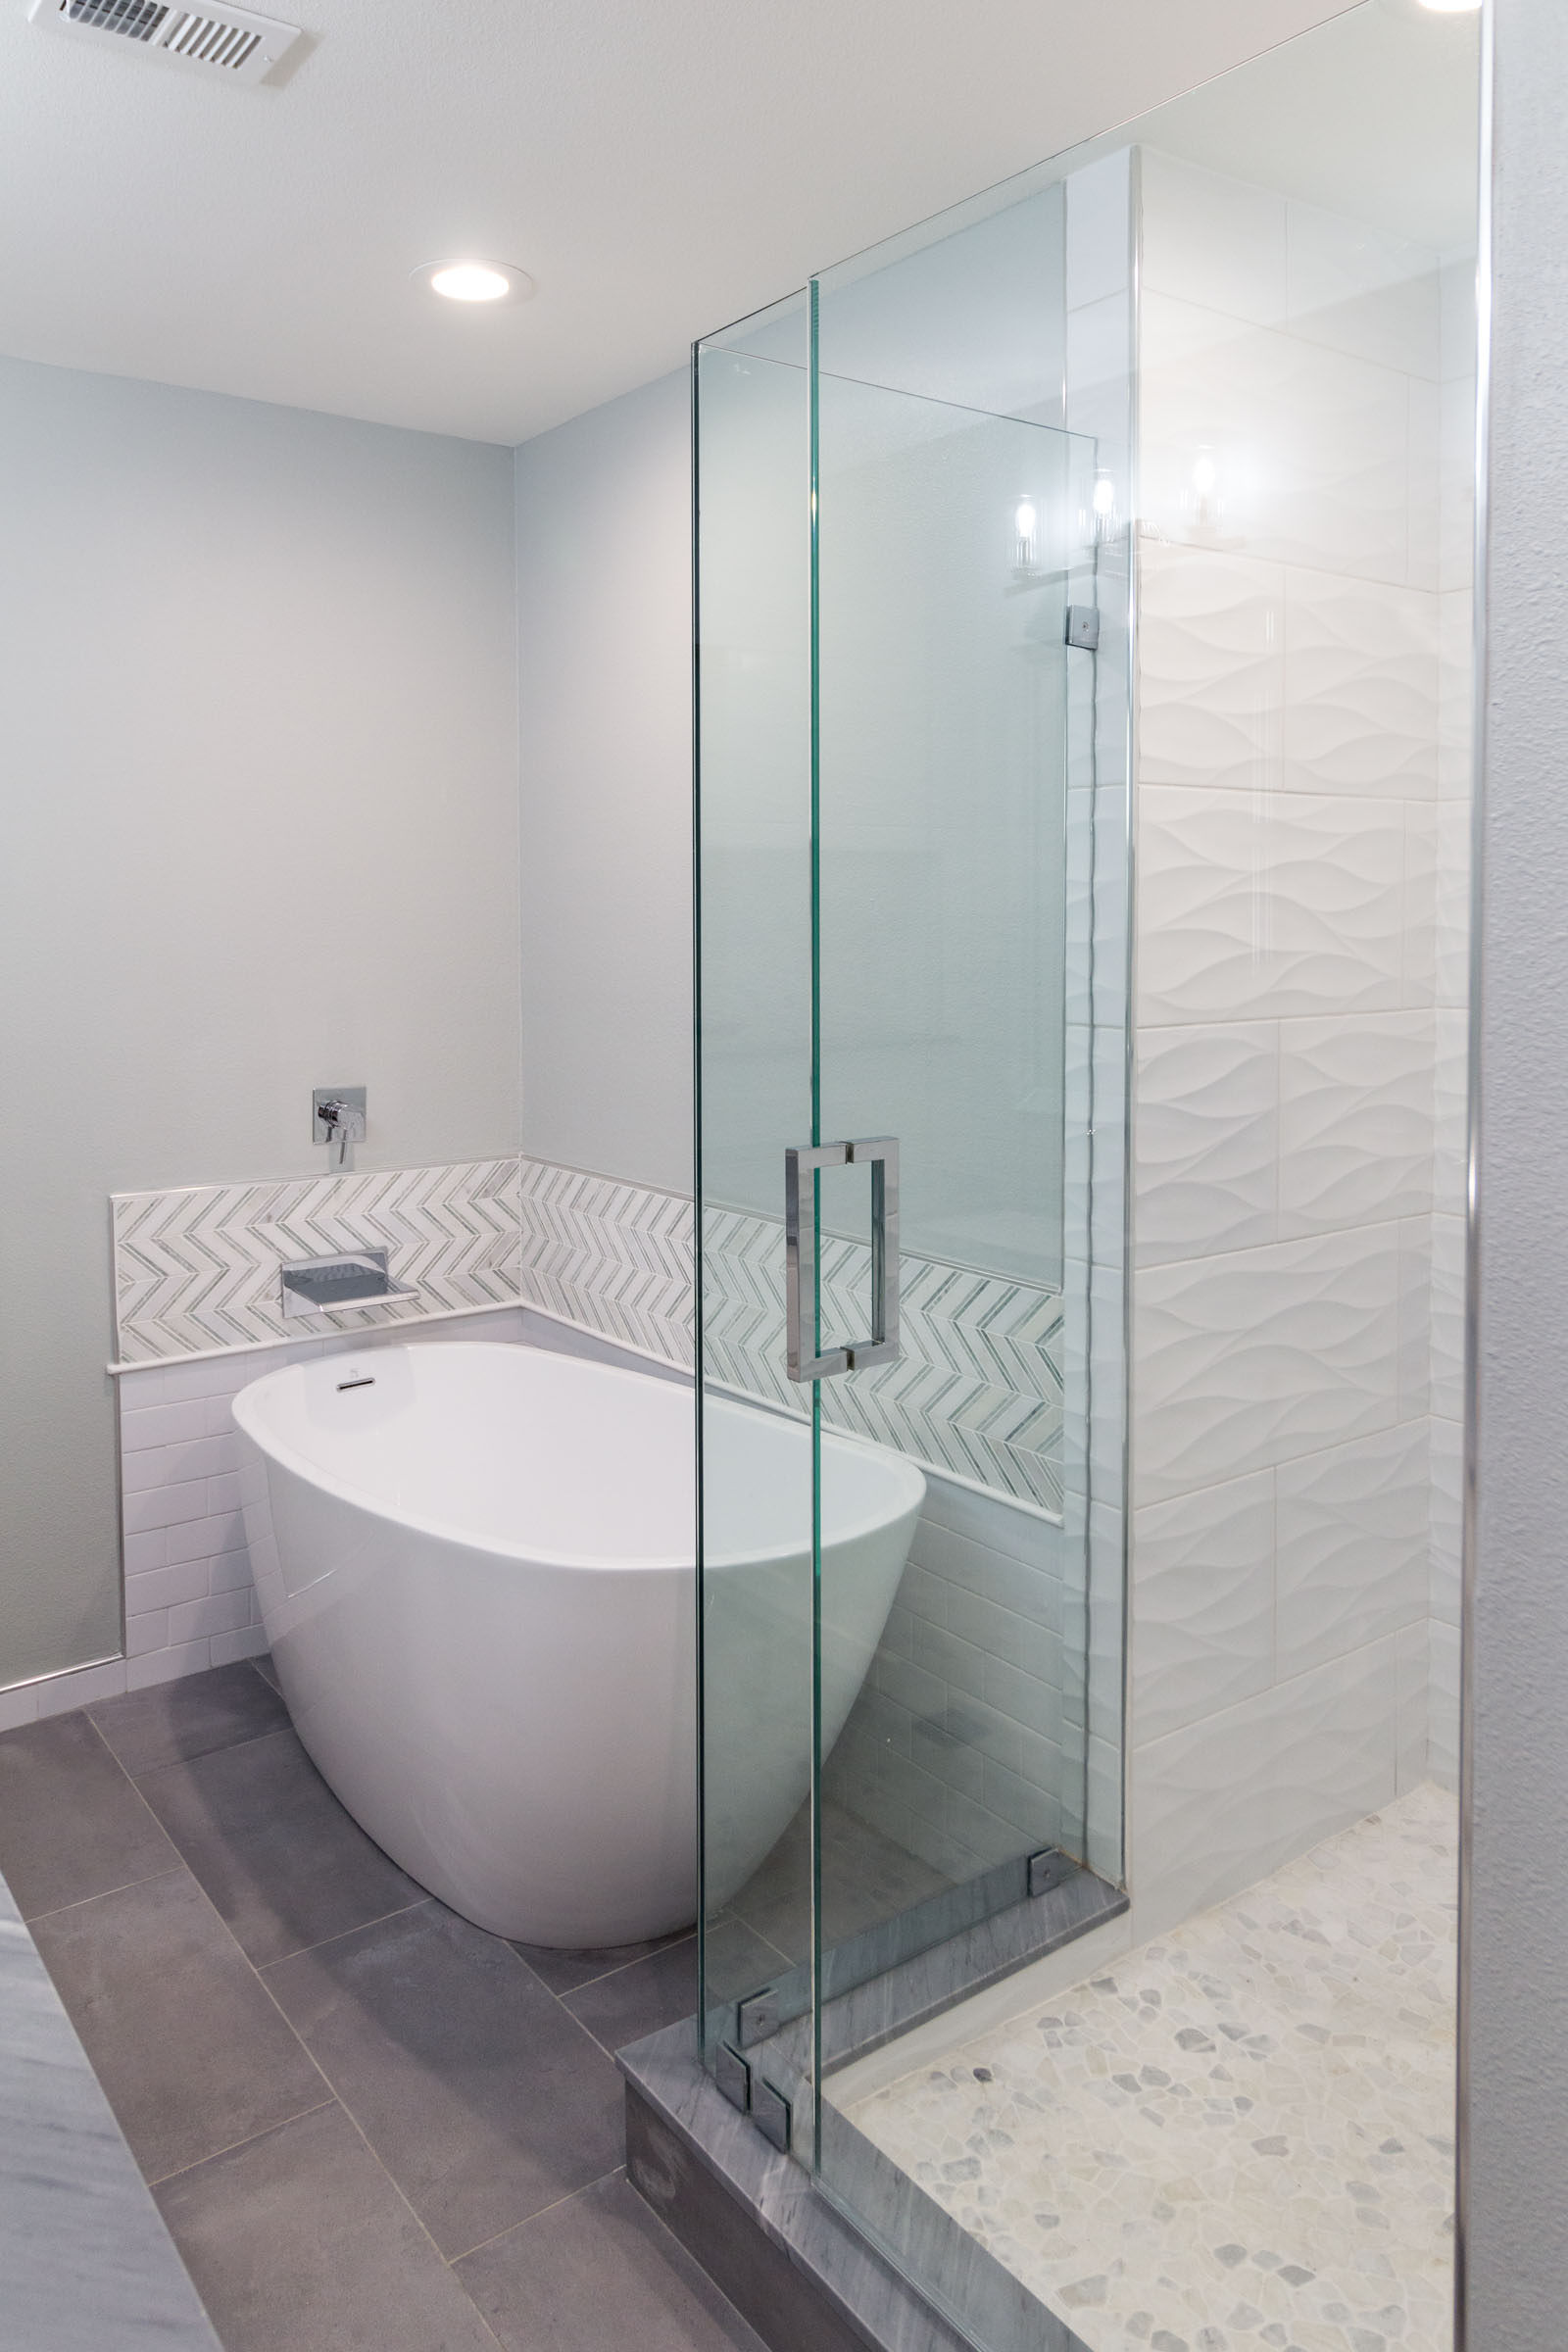 Grey and white bathroom remodel, pedestal tub, waterfall faucet, chrome accents, walkin shower